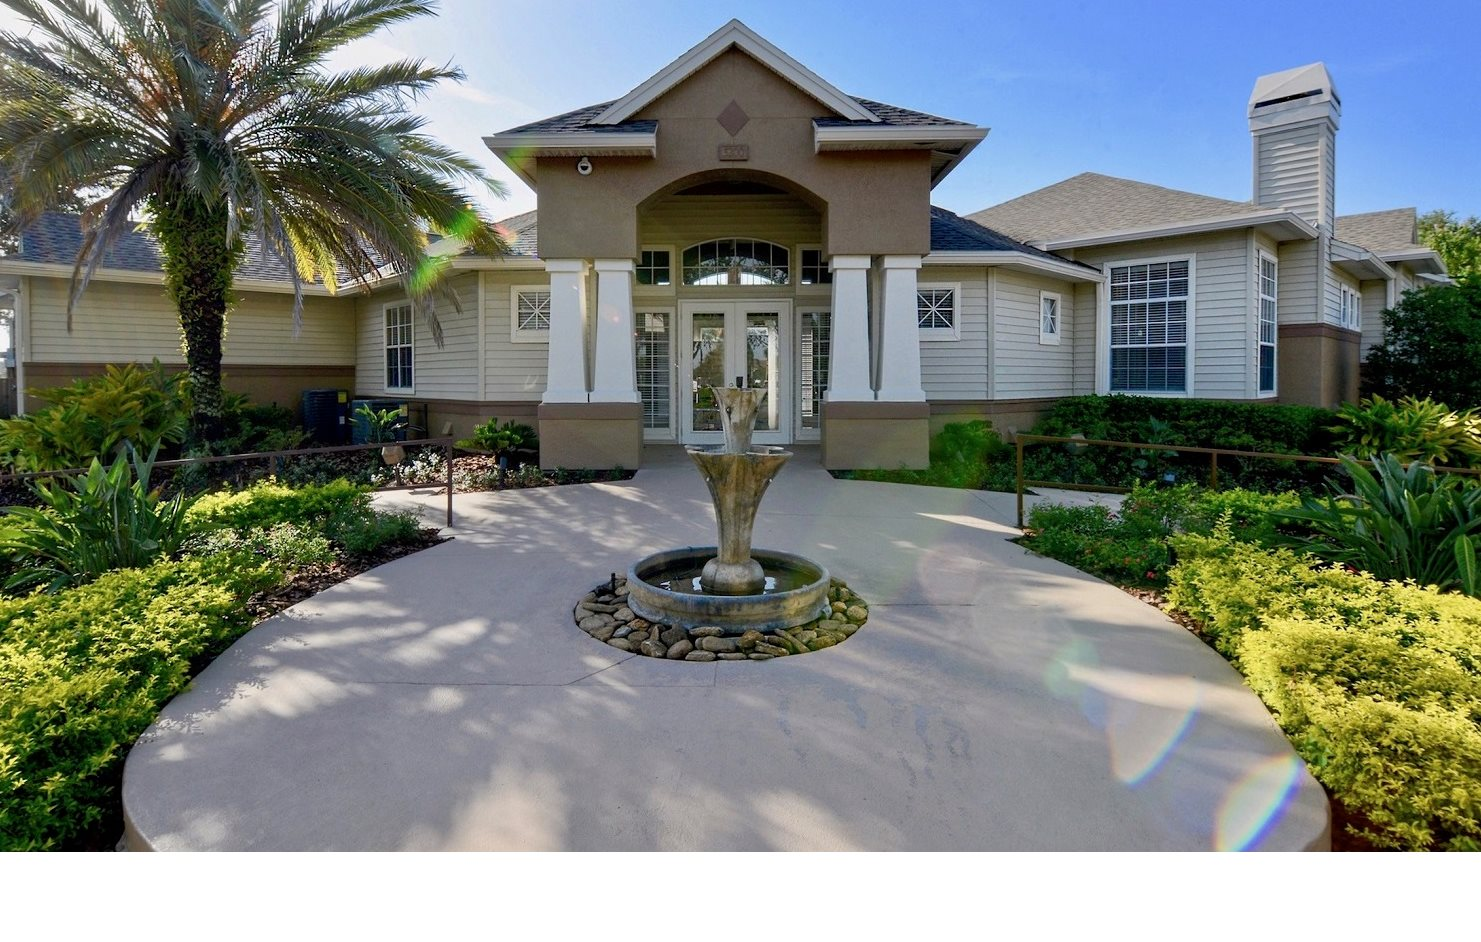 nassau bay | apartments in orlando, fl